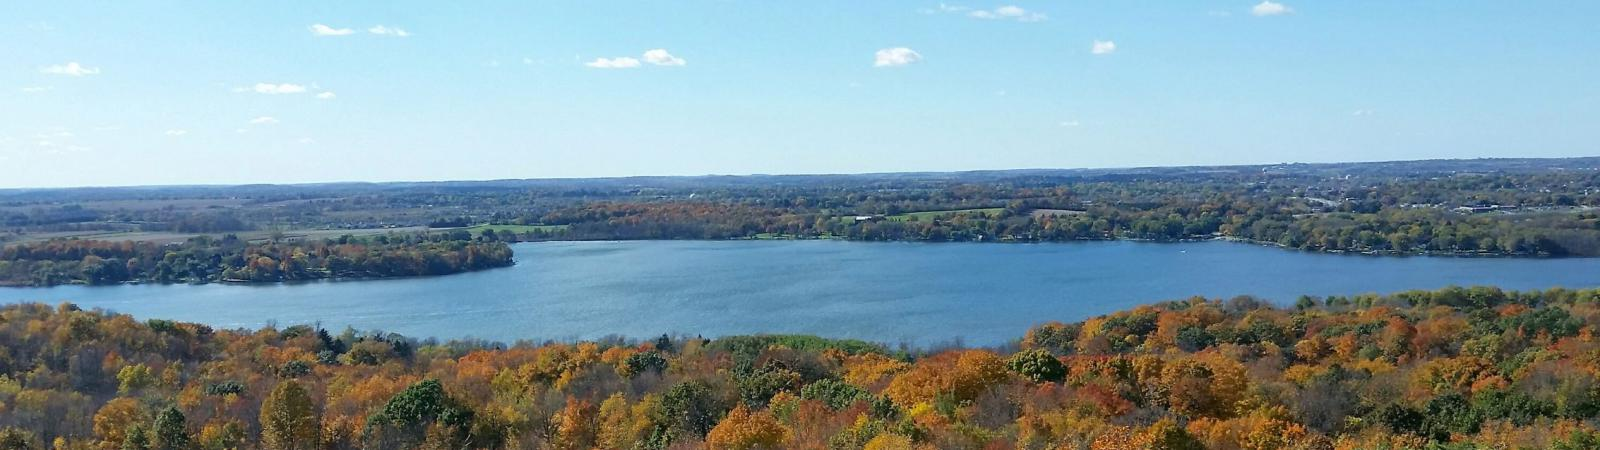 Hartford landscape with lake in background